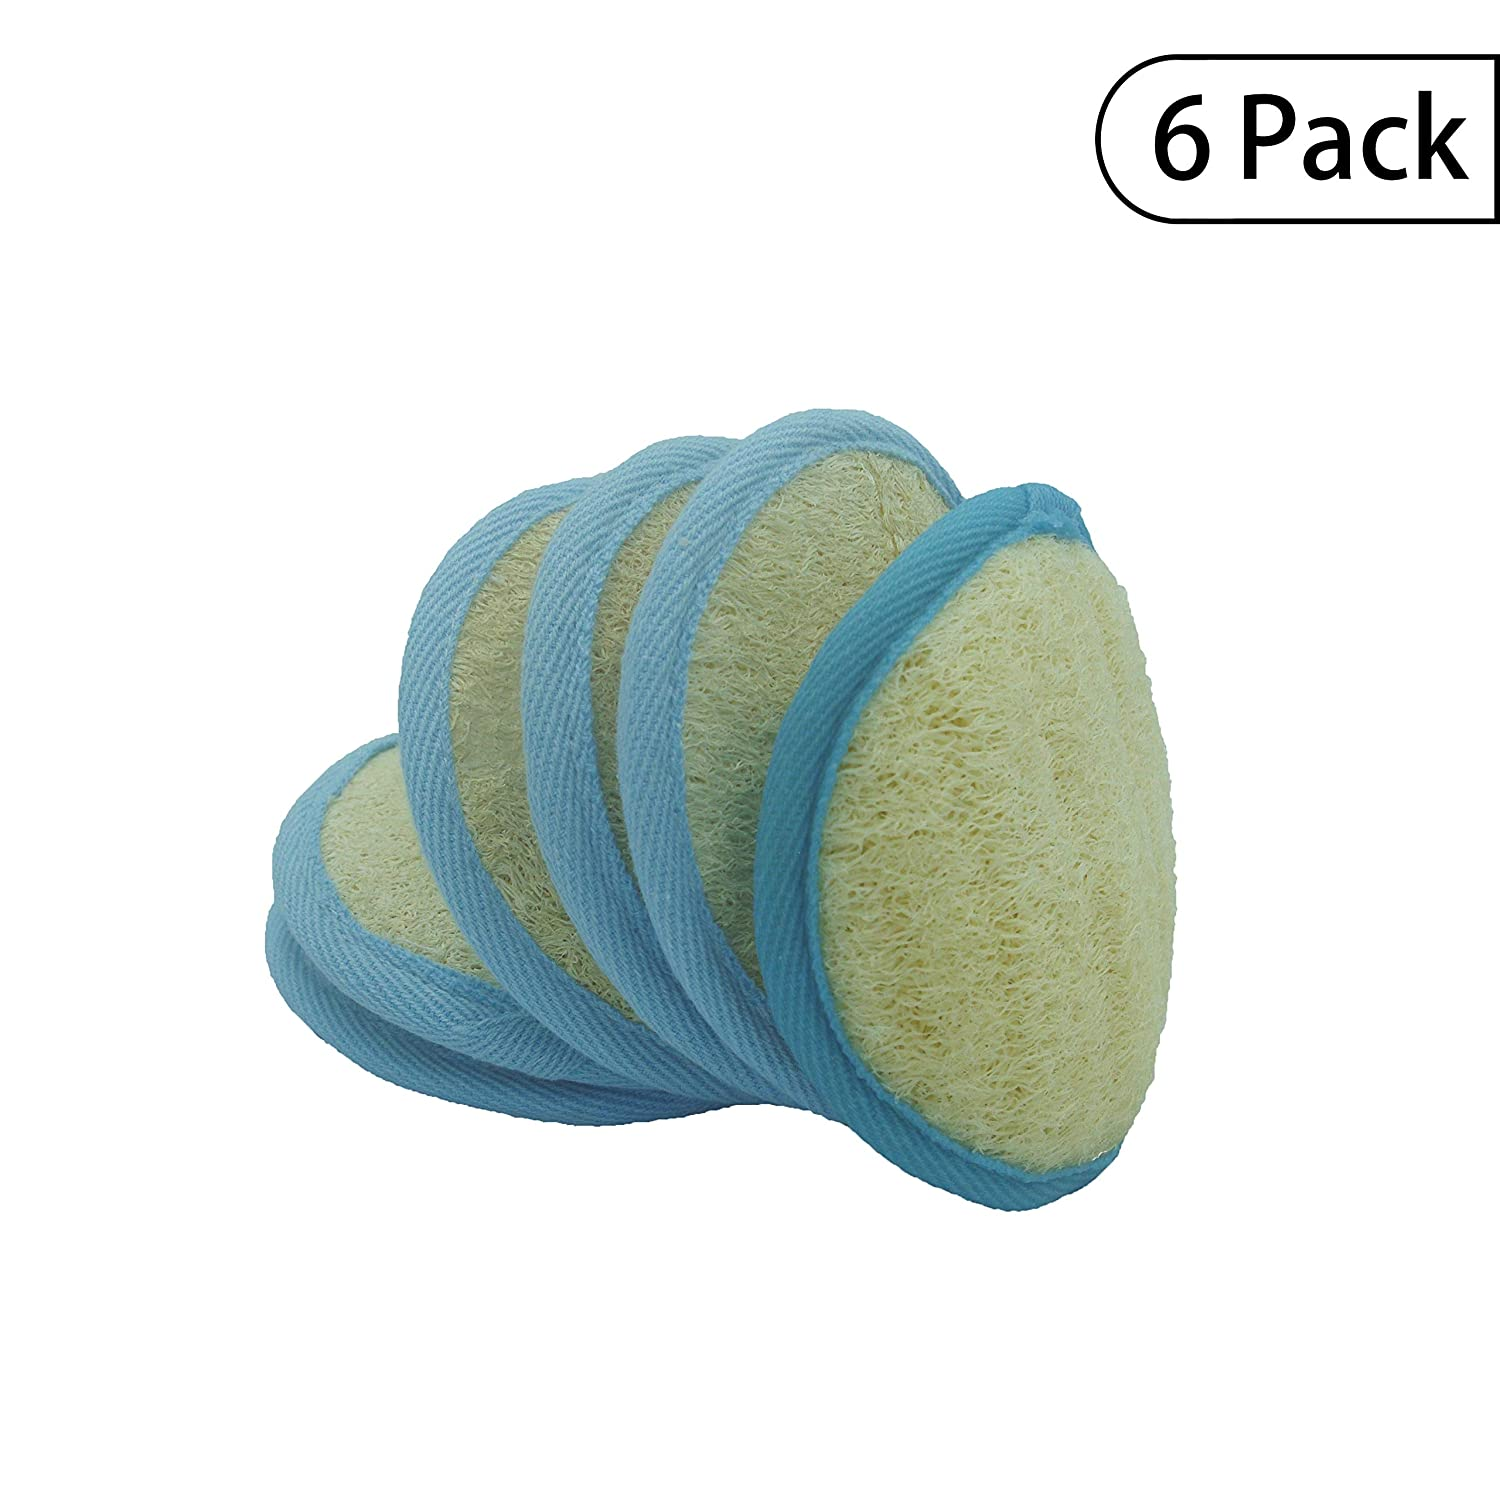 Bleu Bath (6 Pack) Exfoliating Loofah Pad in 100% Natural and Organic Luffa Loofa and Soft Bamboo Terry Material with Hook and Elastic Hand Strap-Scrubber Brush for Men and Women or Sensitive Skin